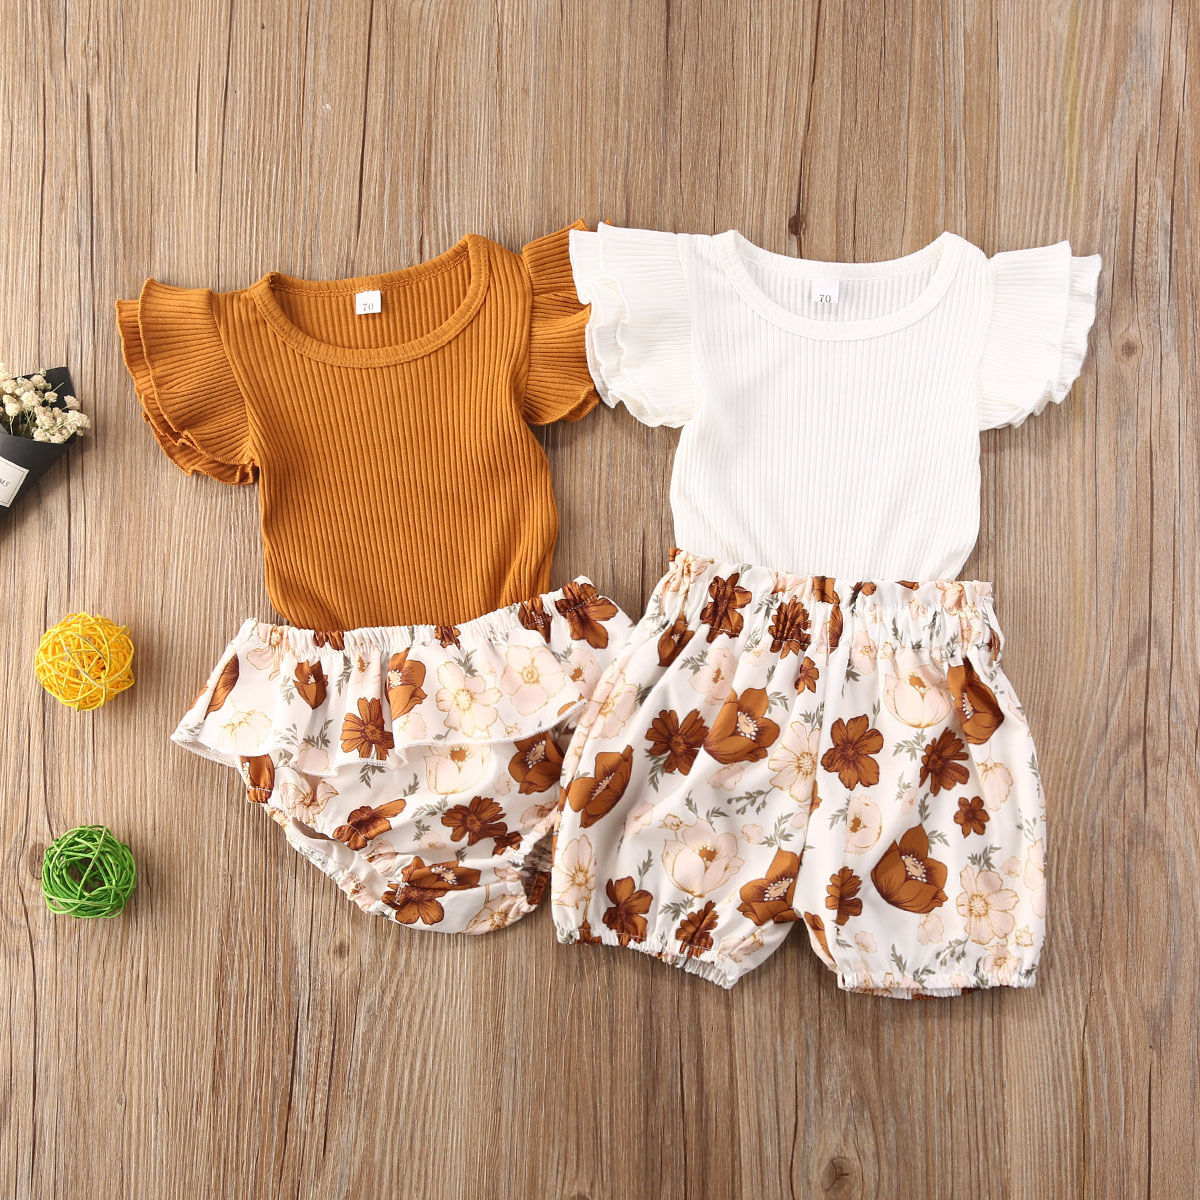 6 Summer Toddler Baby Girl Clothes Fly Sleeve Knitted Romper Tops Floral  Shorts Pants Boho Baby Set 6pcs Outfits Holiday